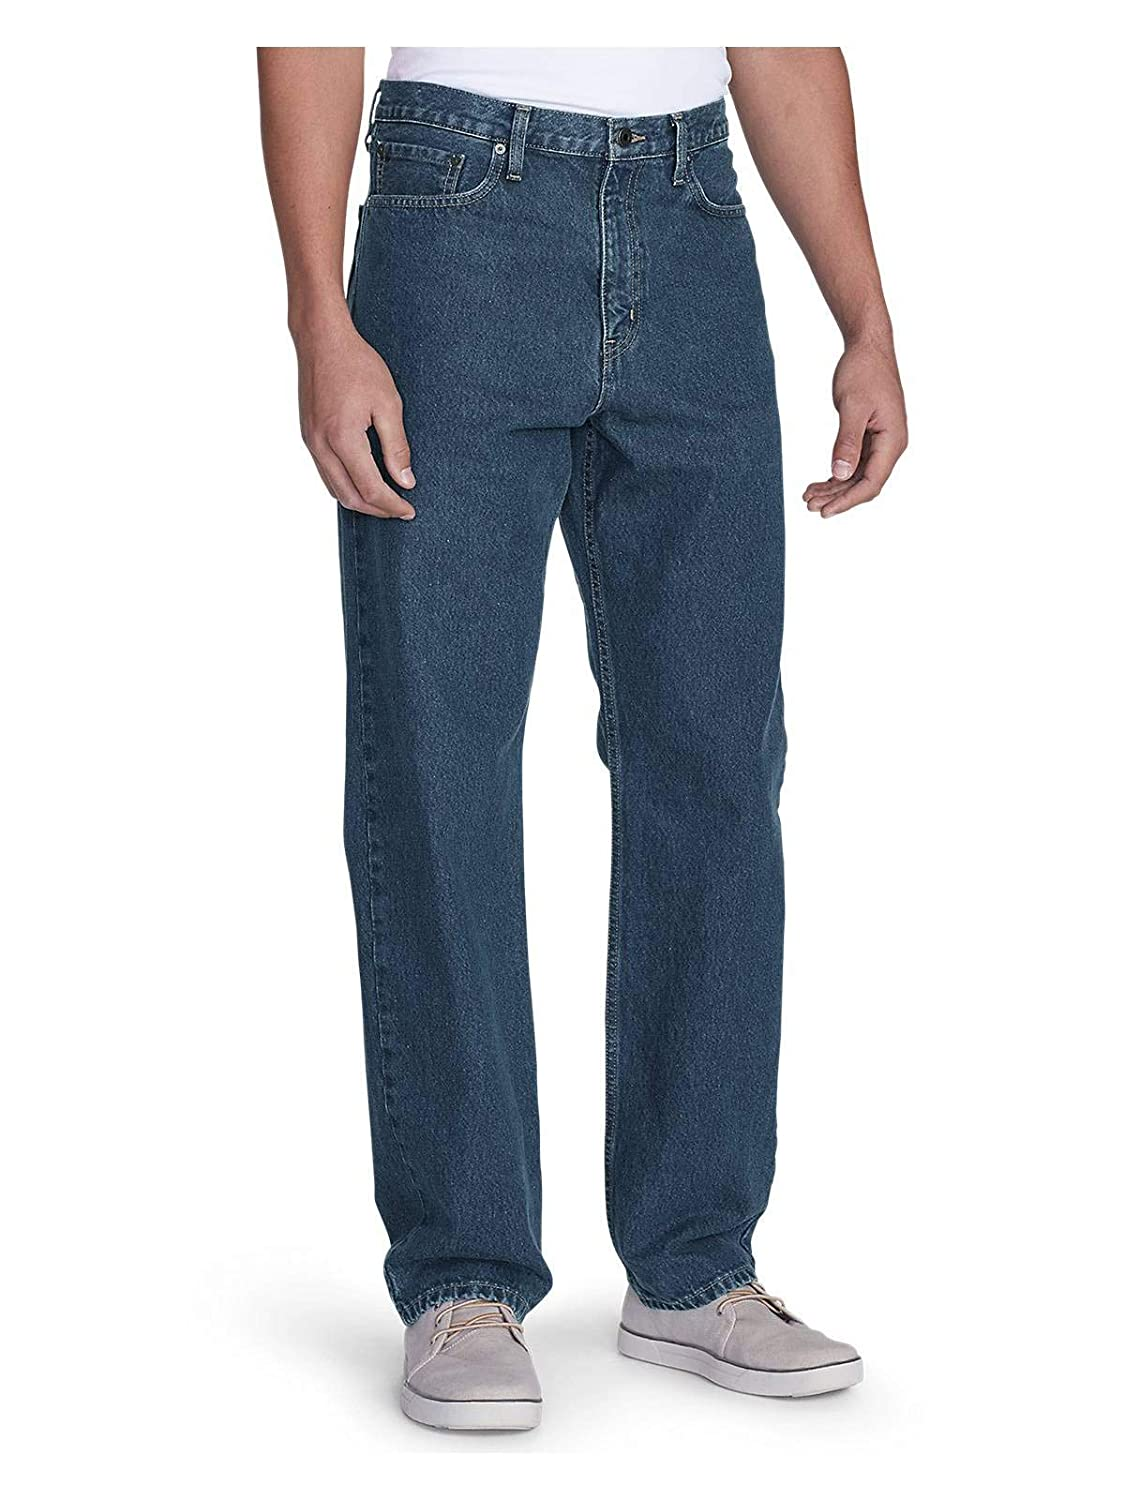 32b33928 Eddie Bauer Mens Traditional Fit Essential Jeans at Amazon Men's Clothing  store: